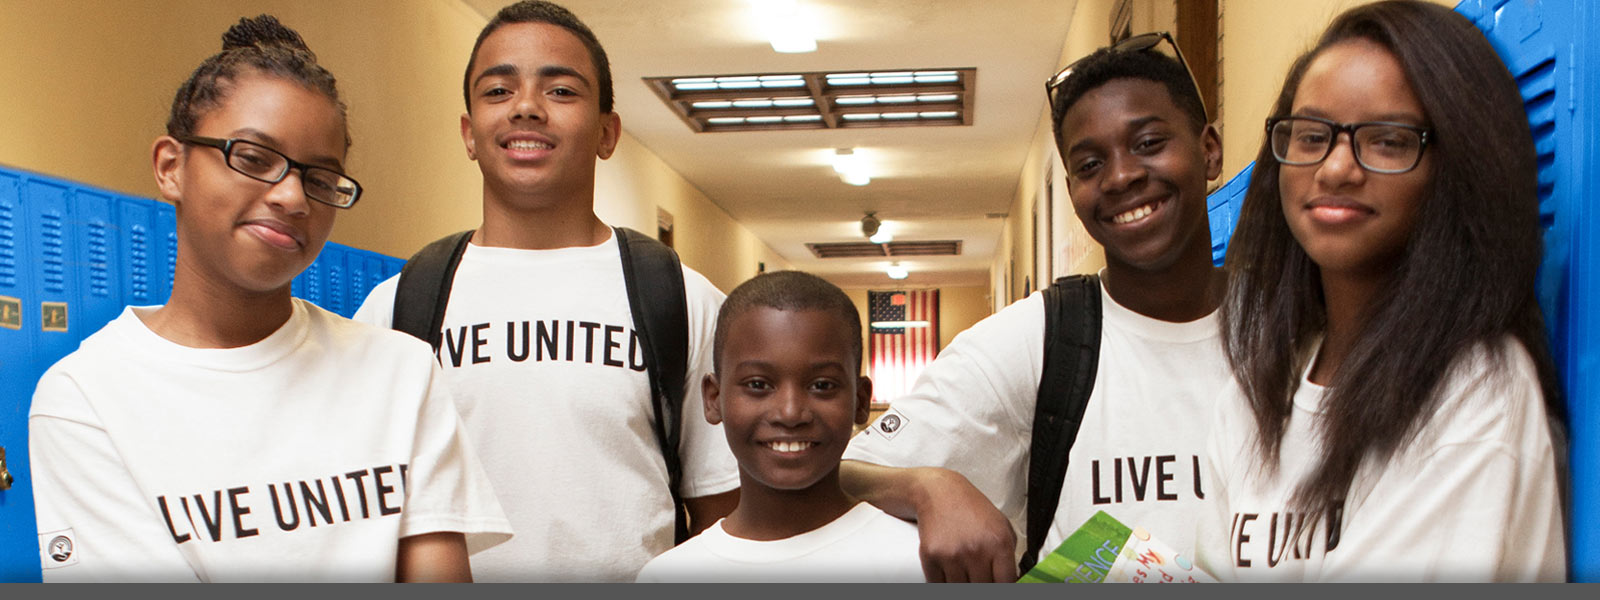 The Heart of Illinois United Way works to ensure that our children are ready to succeed when they enter kindergarten and people of all ages are prepared for work, postsecondary education and life.